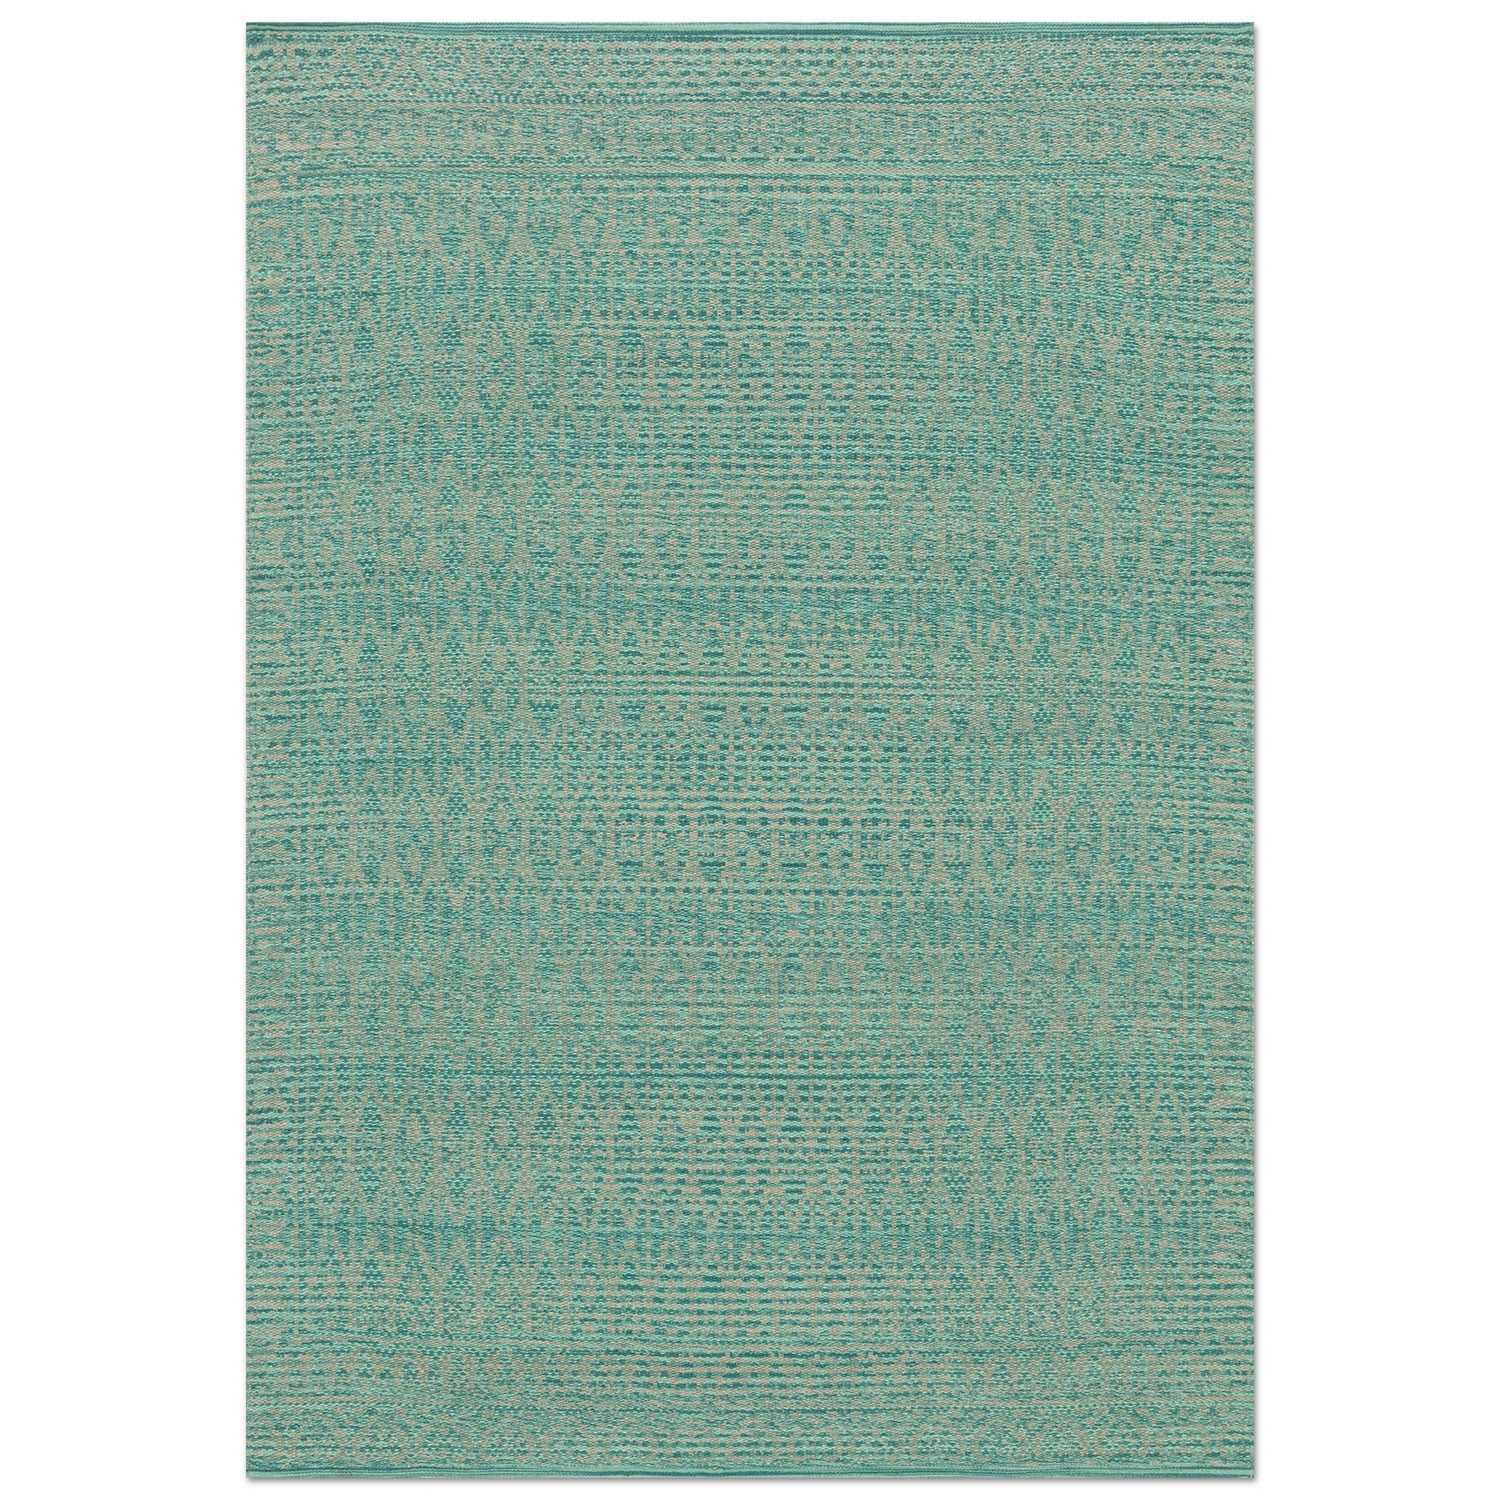 Emmie Kay 5' x 8' Rug - Turquoise and Dove